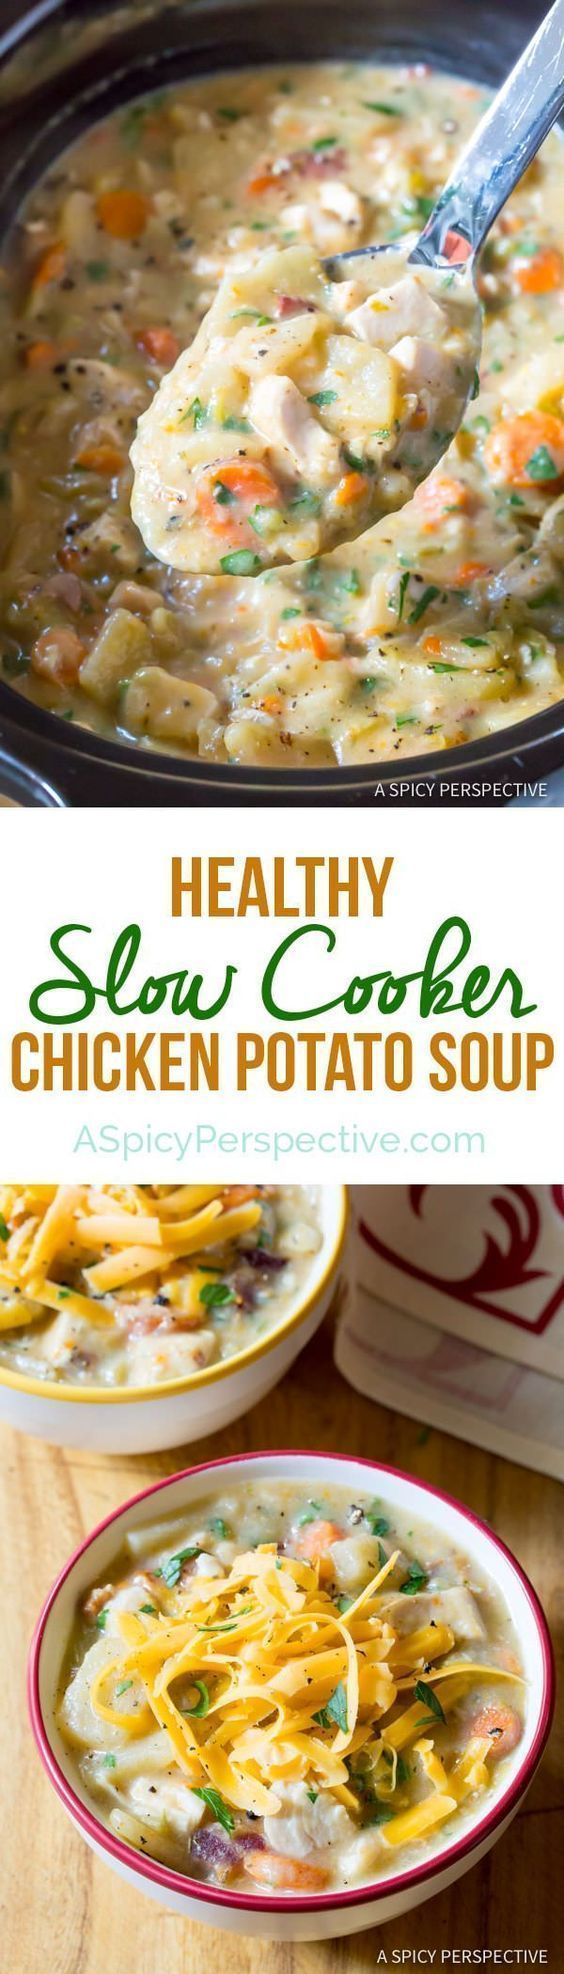 Amazing Healthy Slow Cooker Chicken Potato Soup | http://ASpicyPerspective.com http://eatdojo.com/easy-healthy-crockpot-recipes-cheap-meals/